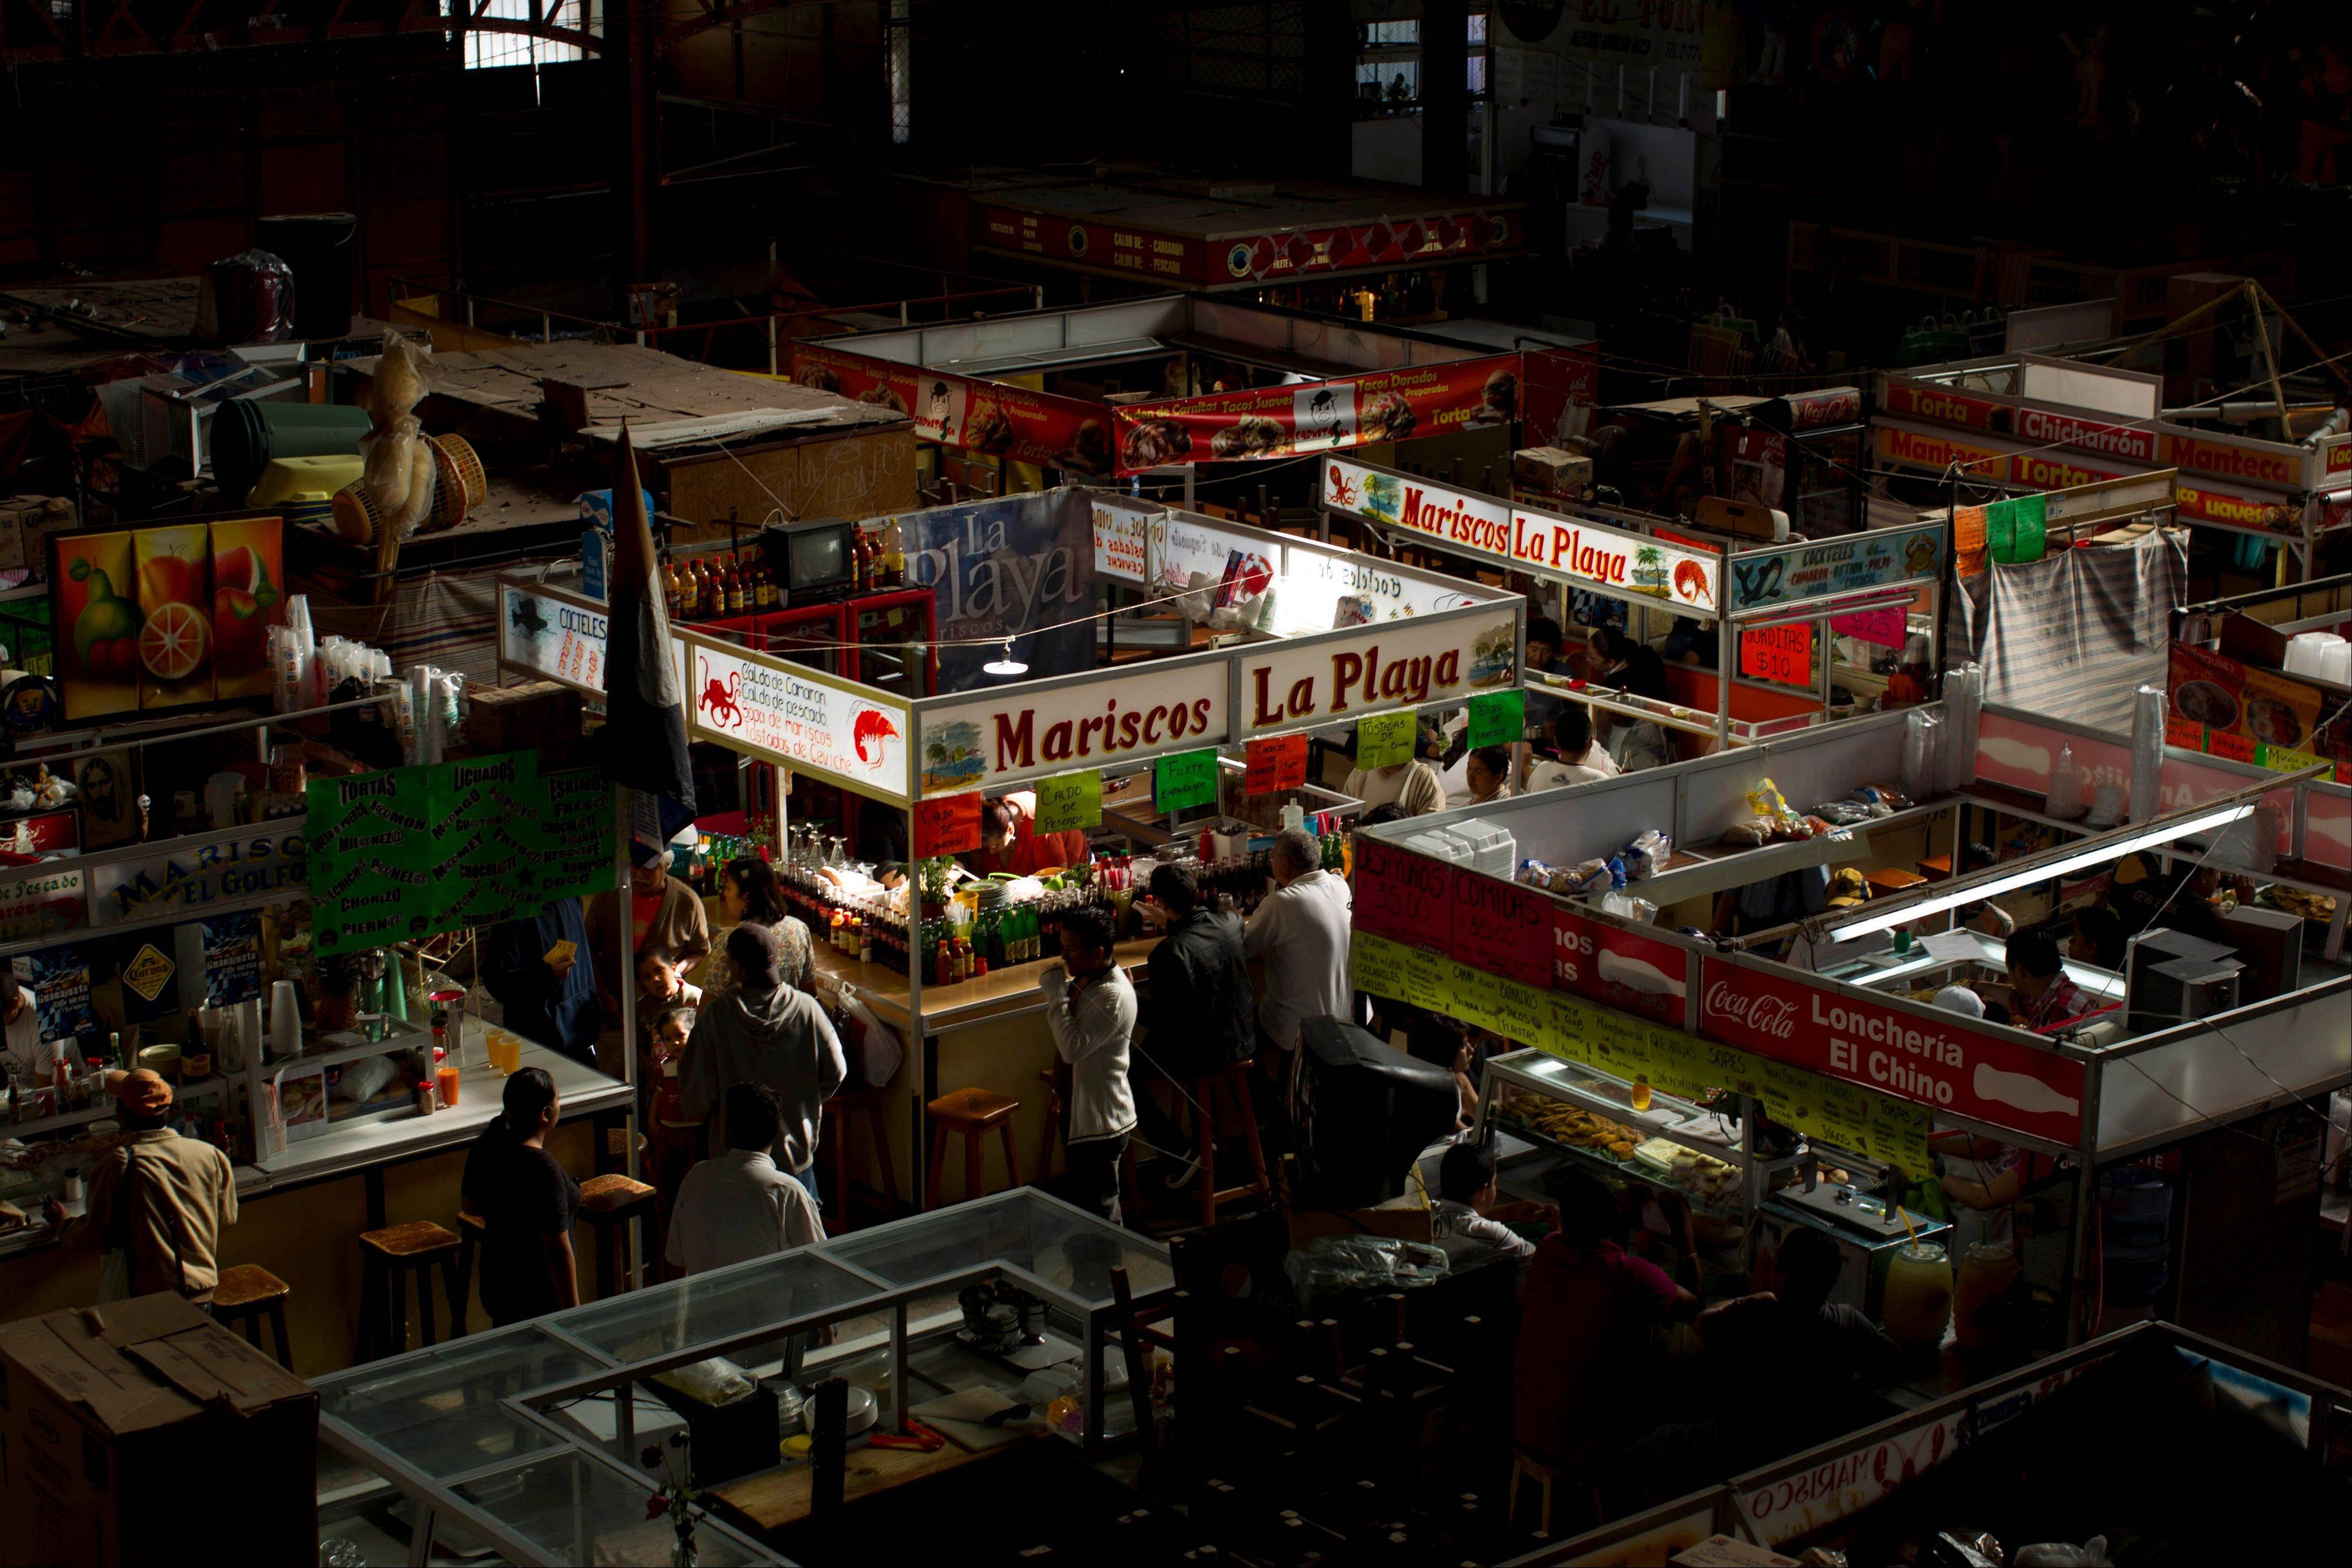 People eat at the traditional food stands inside Guanajuato's central market.